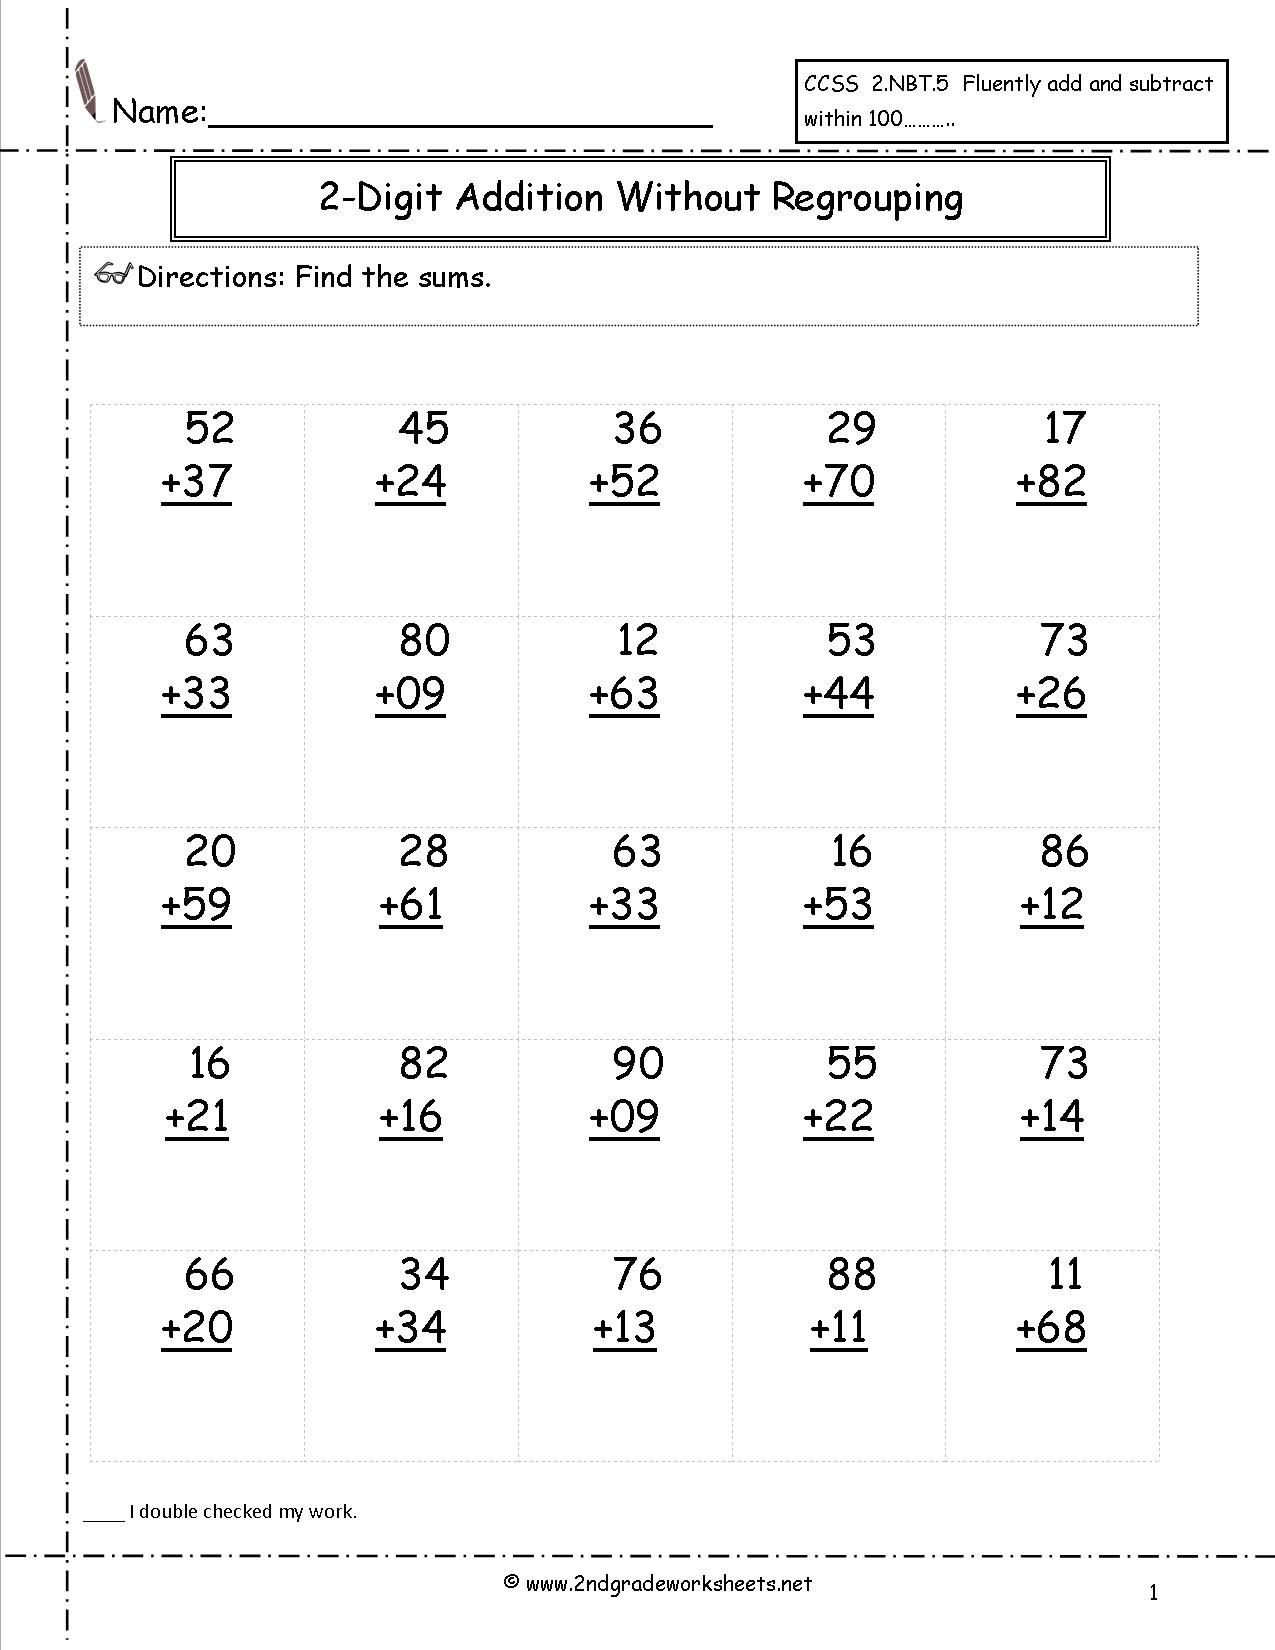 Worksheets Two Digit Subtraction Without Regrouping Worksheets free addition printable worksheets two digit with no regrouping worksheet